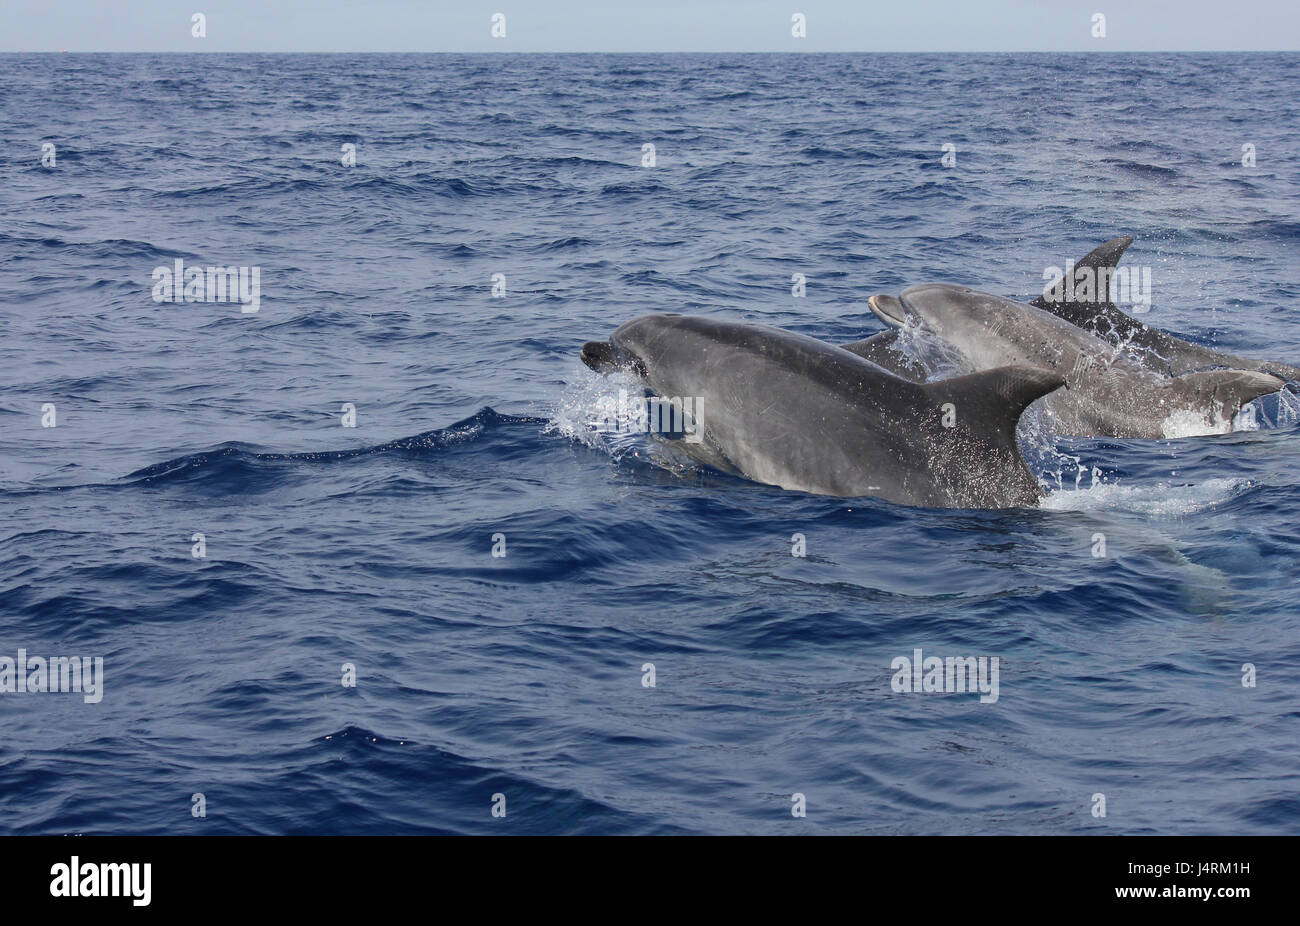 Bottle nose dolphins swimming at the surface of the ocean Stock Photo